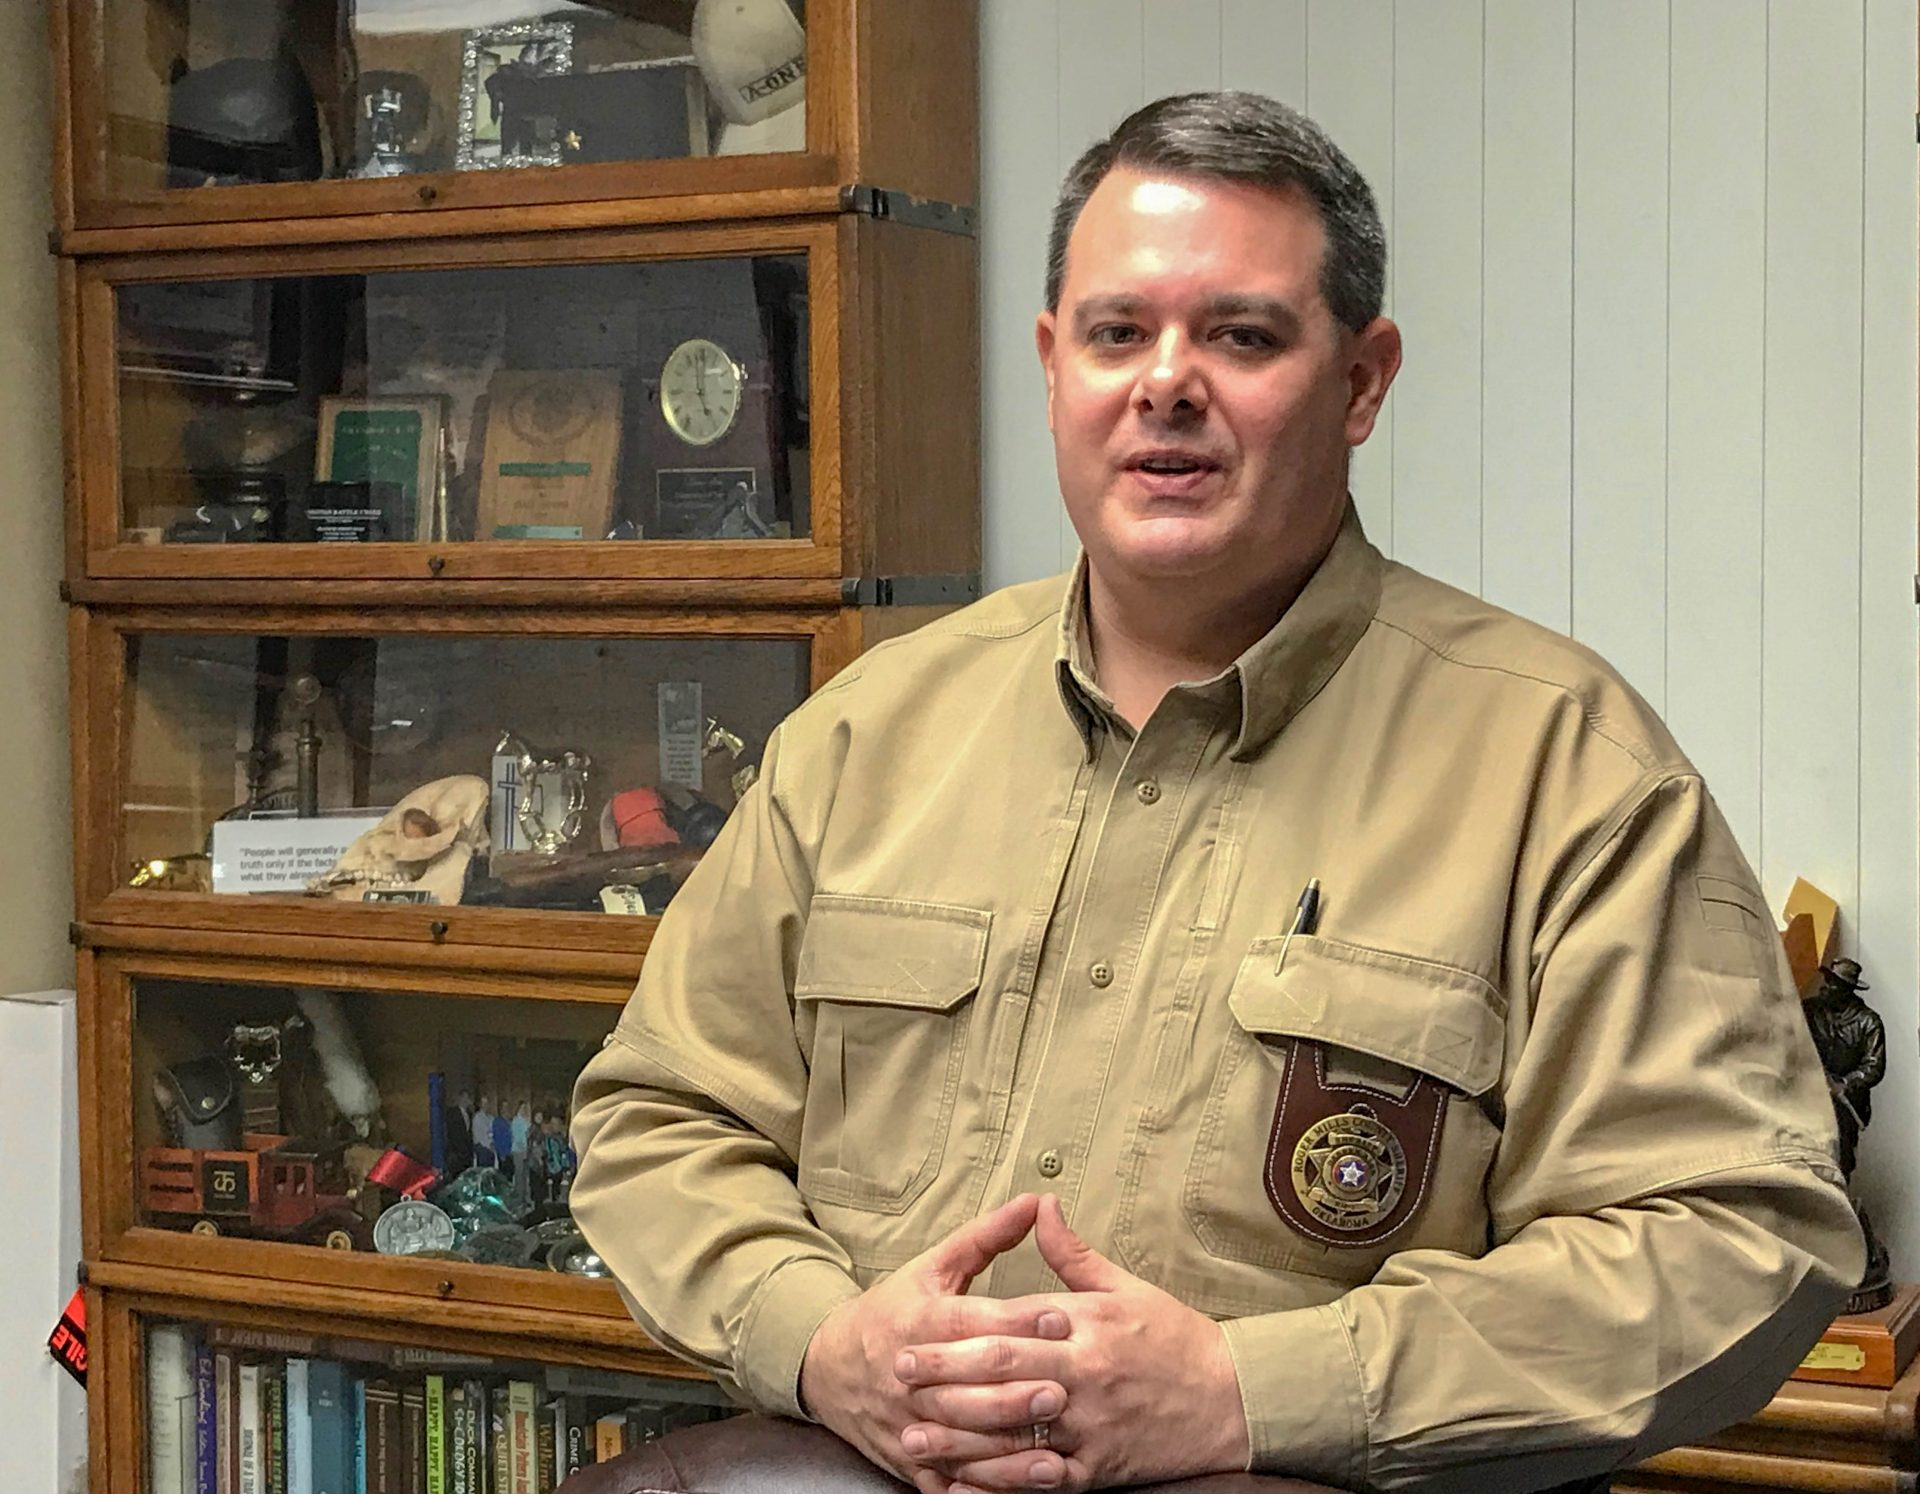 Sheriff Darren Atha stands behind his desk in front of a trophy case.